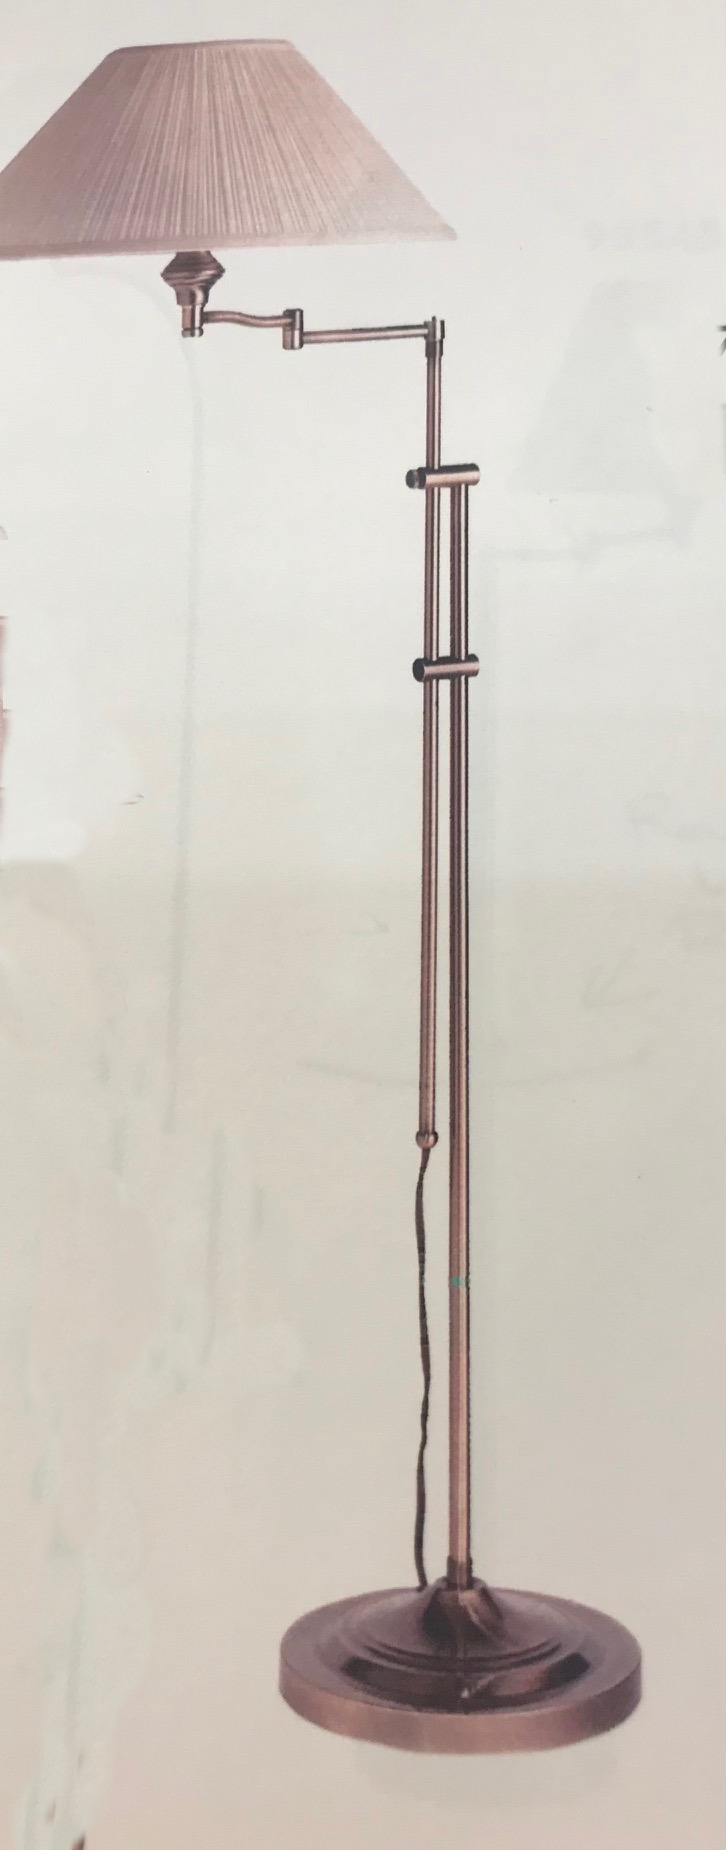 1035 Adj. Swing Arm Floor Lamp Made in Canada Available in Antique Brass or Brushed Chrome Regular Price $267.99 Sale Price $187.99